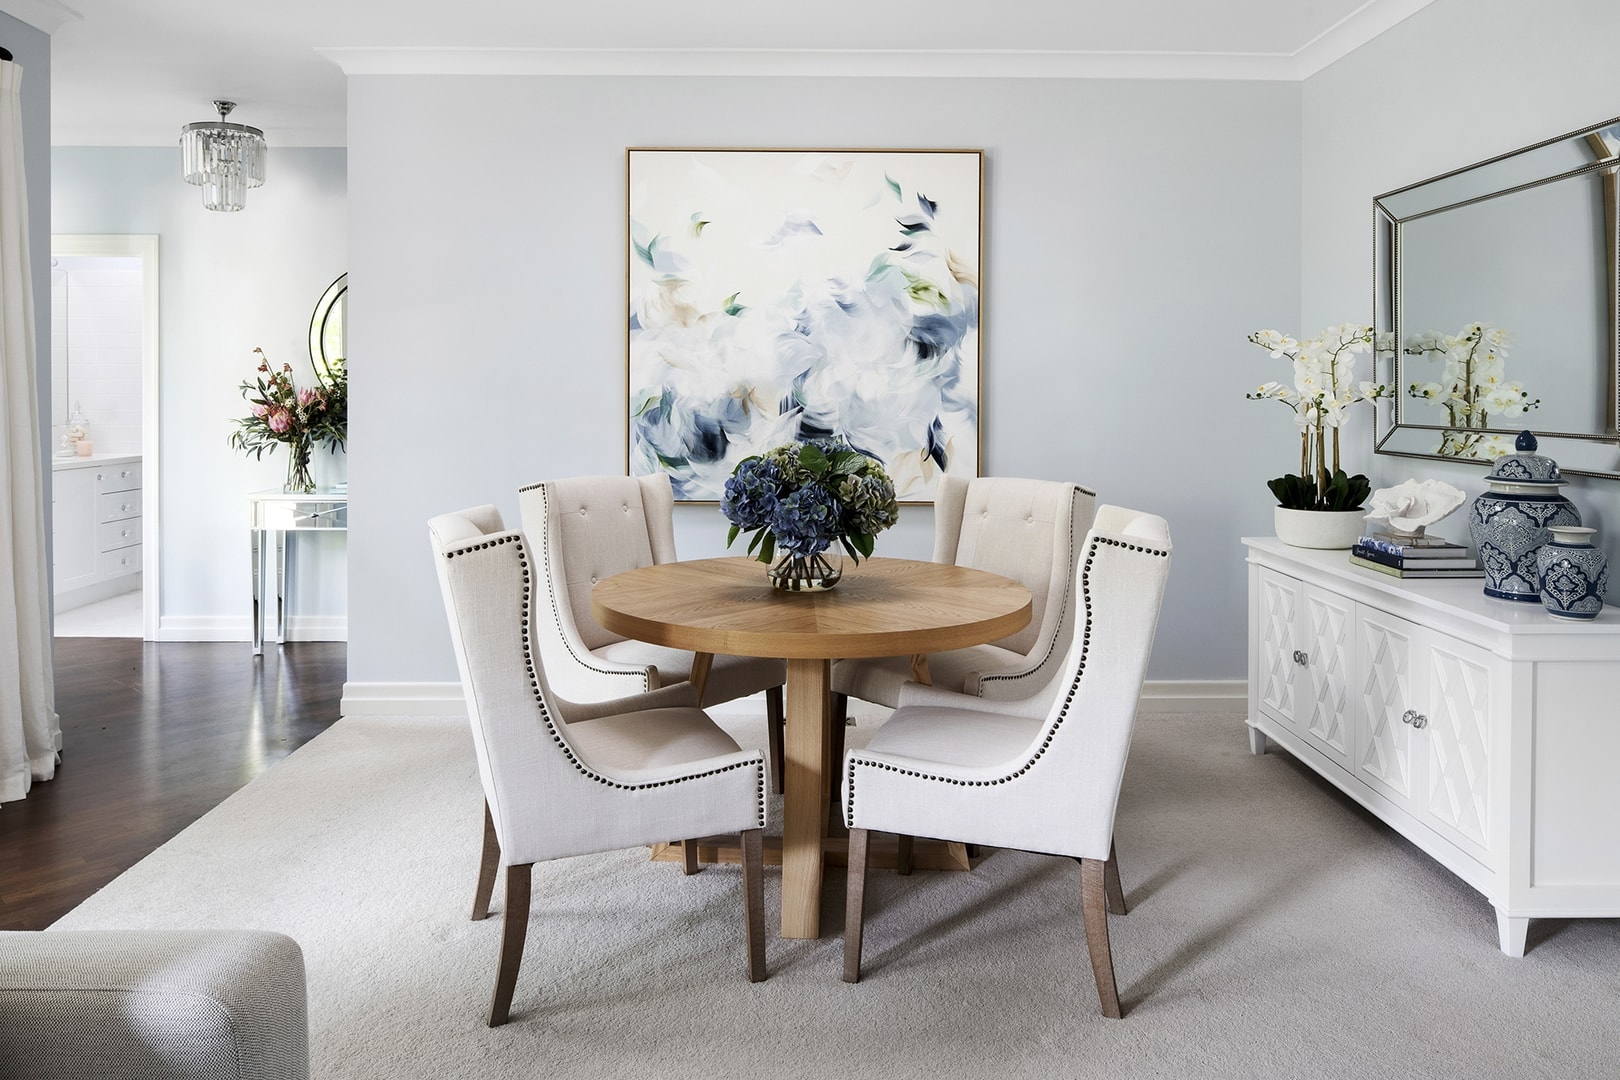 classic hamptons interior design dining room with chalie macrae art on light blue wall